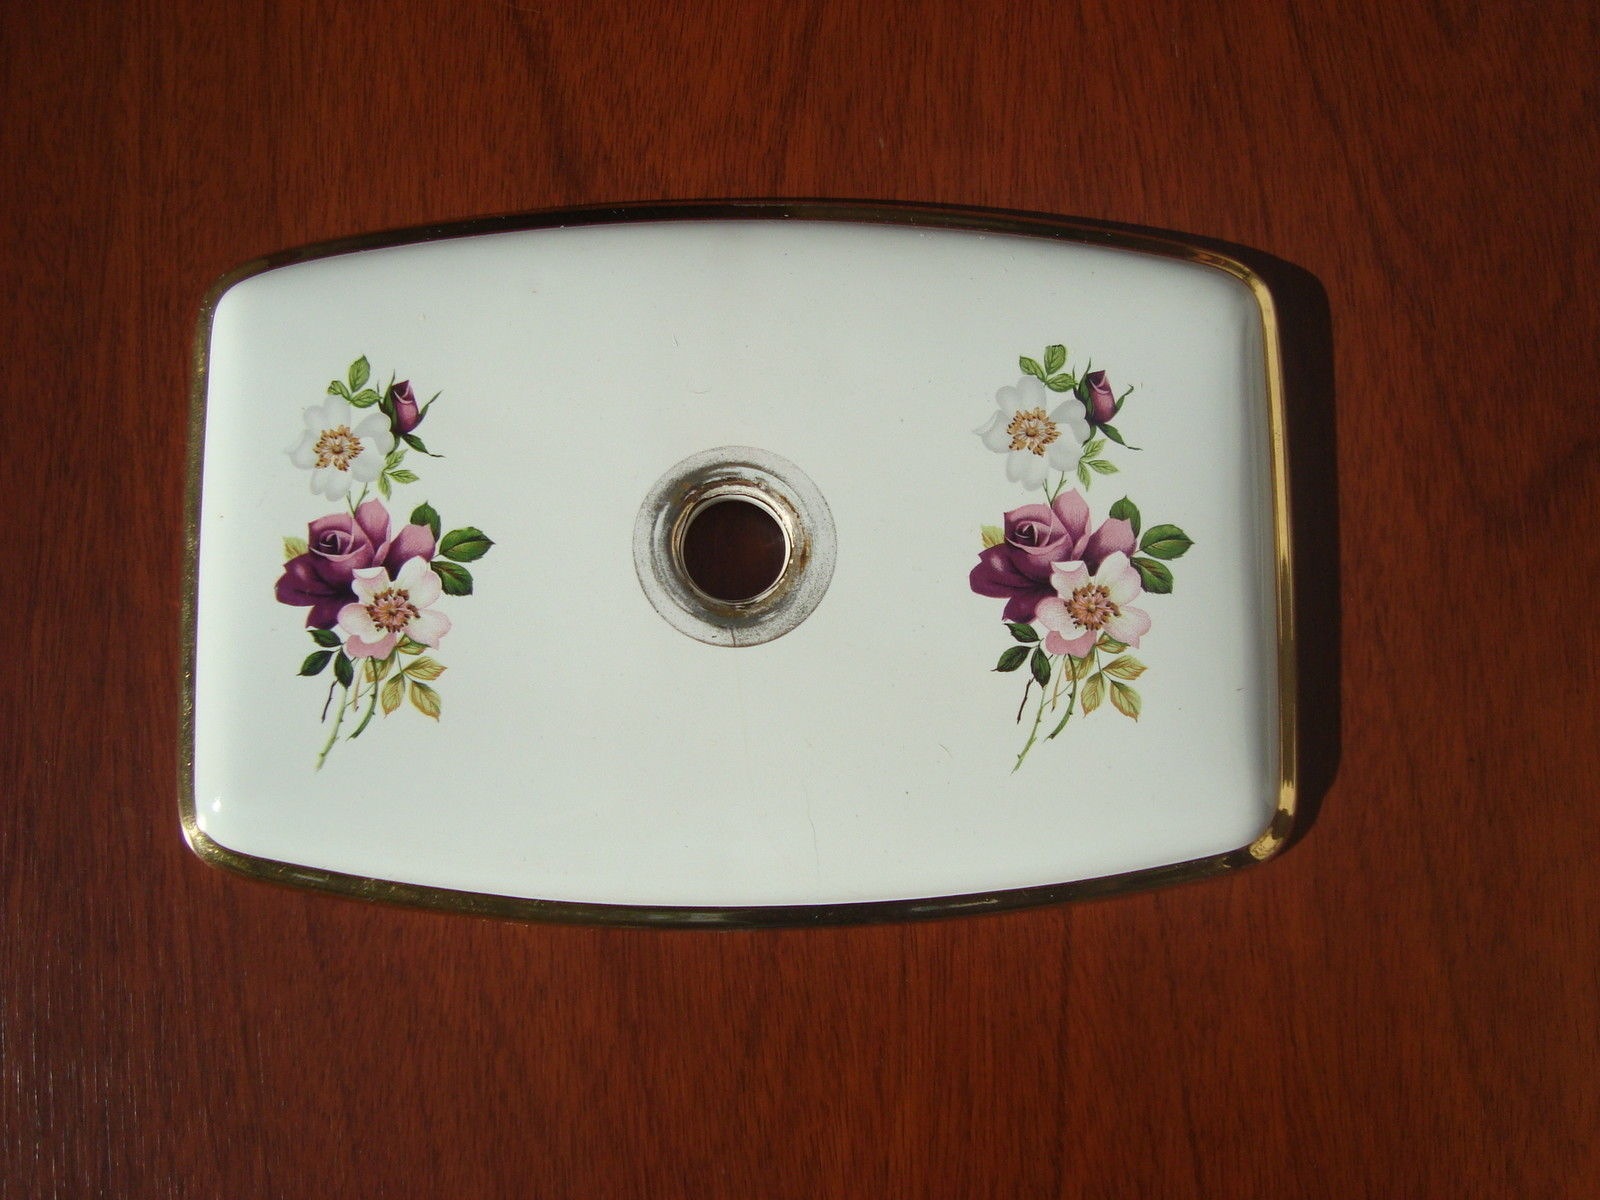 edwardian flower gold antique porcelain toilet lid cistern embed tank